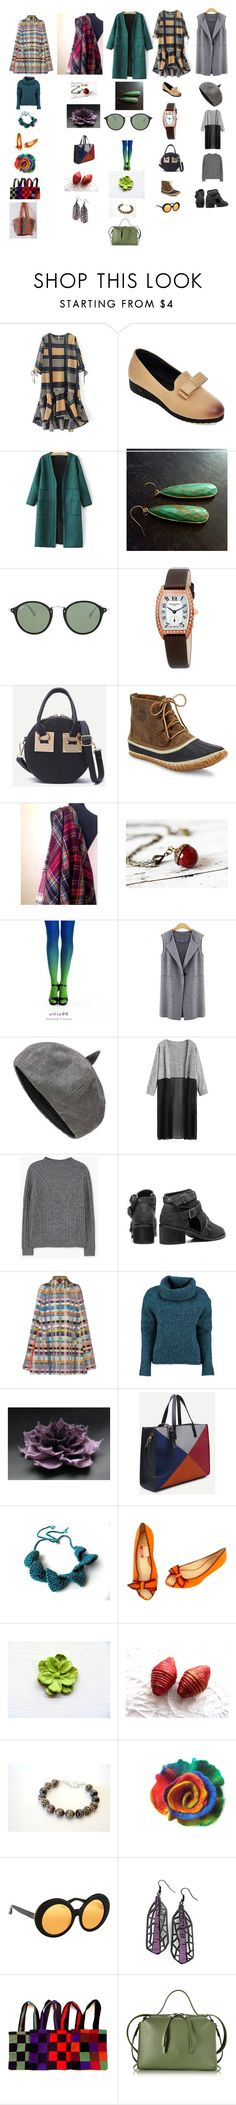 """""""FOR YOU"""" by talma-vardi ❤ liked on Polyvore featuring Ray-Ban, Frédérique Constant, SOREL, MANGO, Missoni, Lowie, Moschino, Fila, Linda Farrow and Jil Sander"""